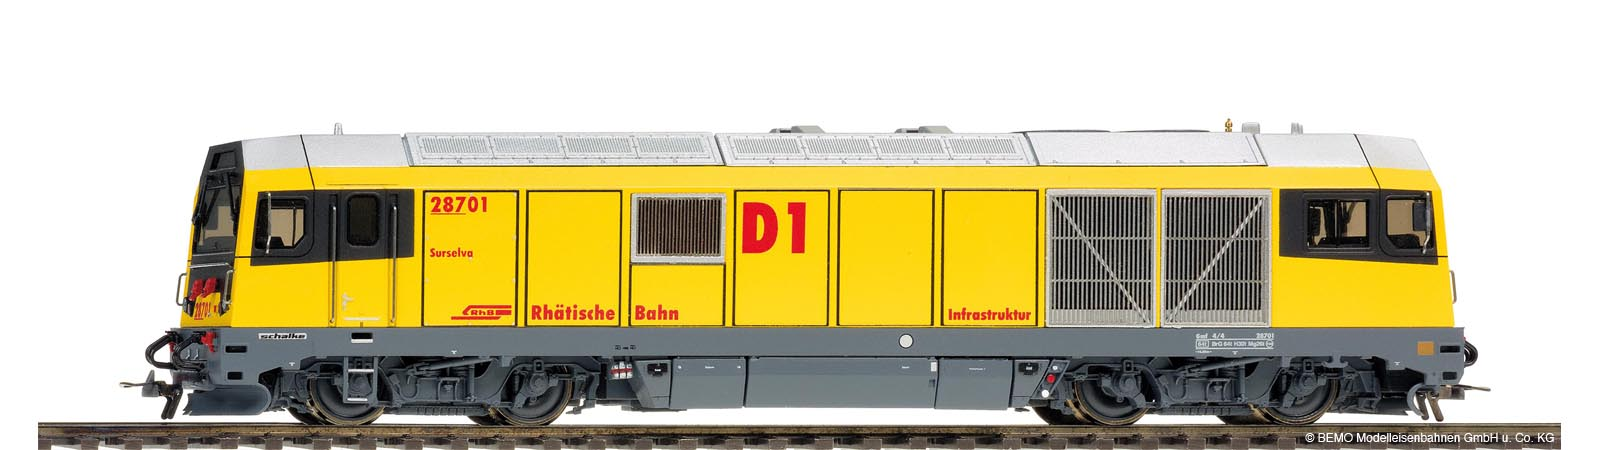 "Bemo 1388 101 - RhB Diesellokomotive, Gmf 287, D1, #01, ""Surselva"", digital mit Sound"